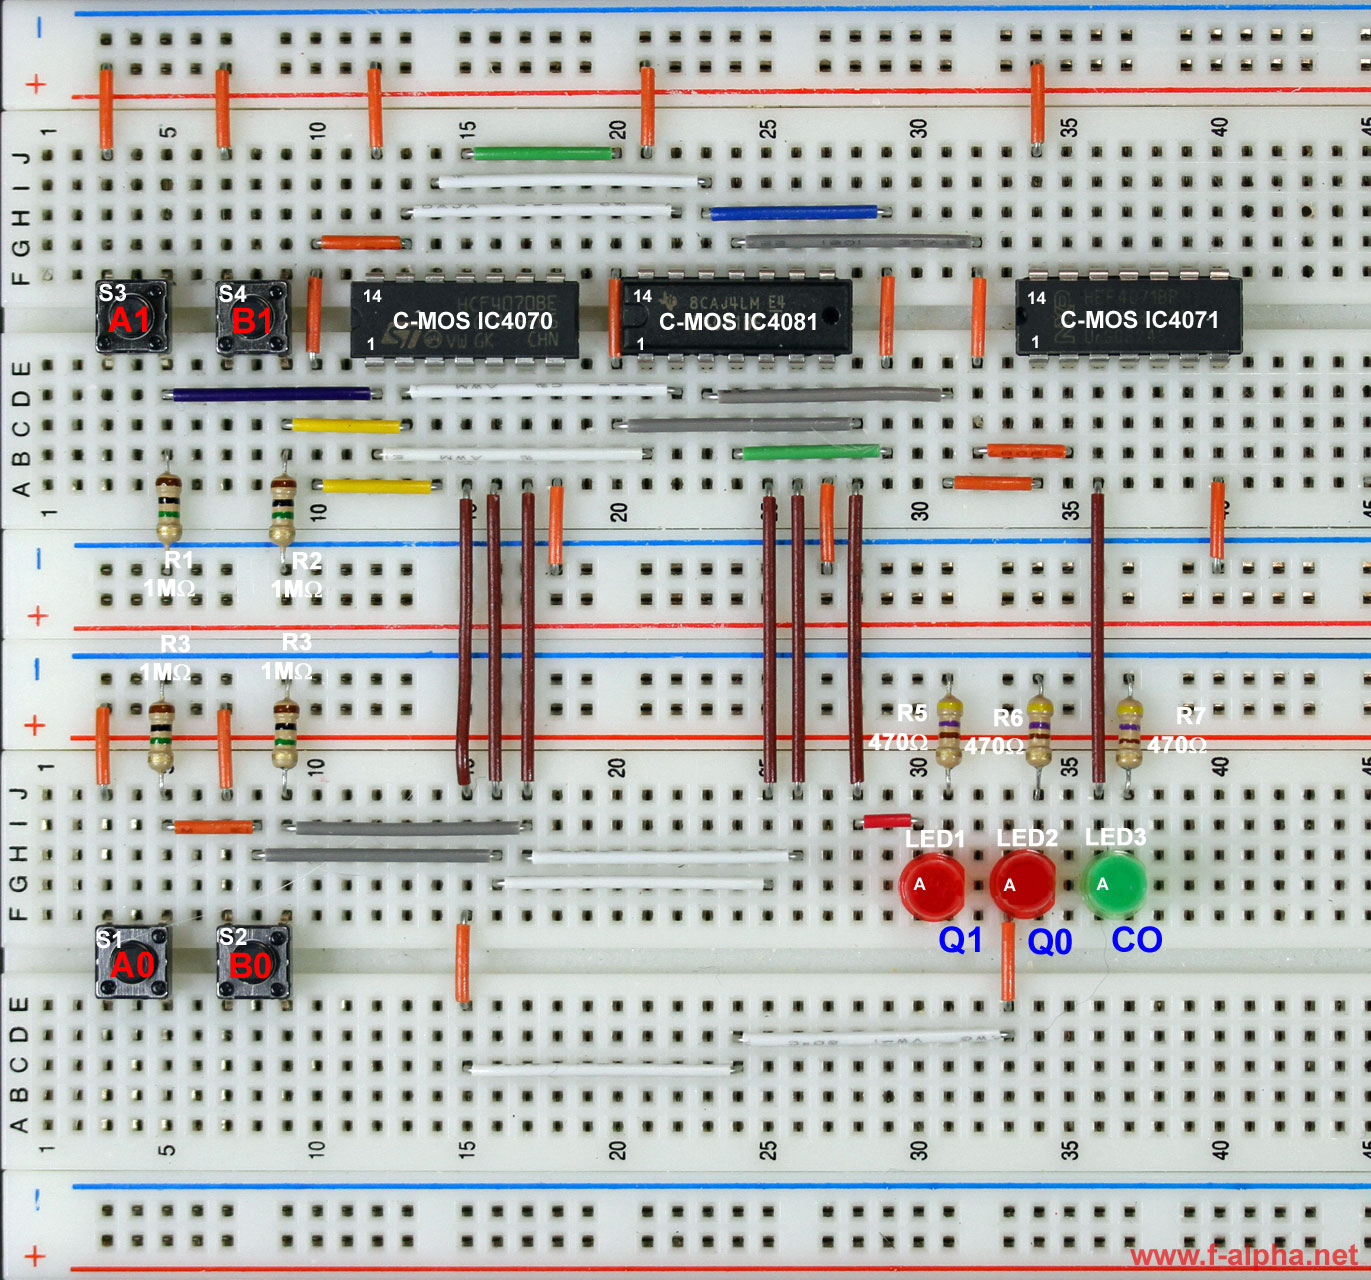 2 Bit Adder Logic Diagram Wiring Library Circuit Of Fulladder Using Nor Gates